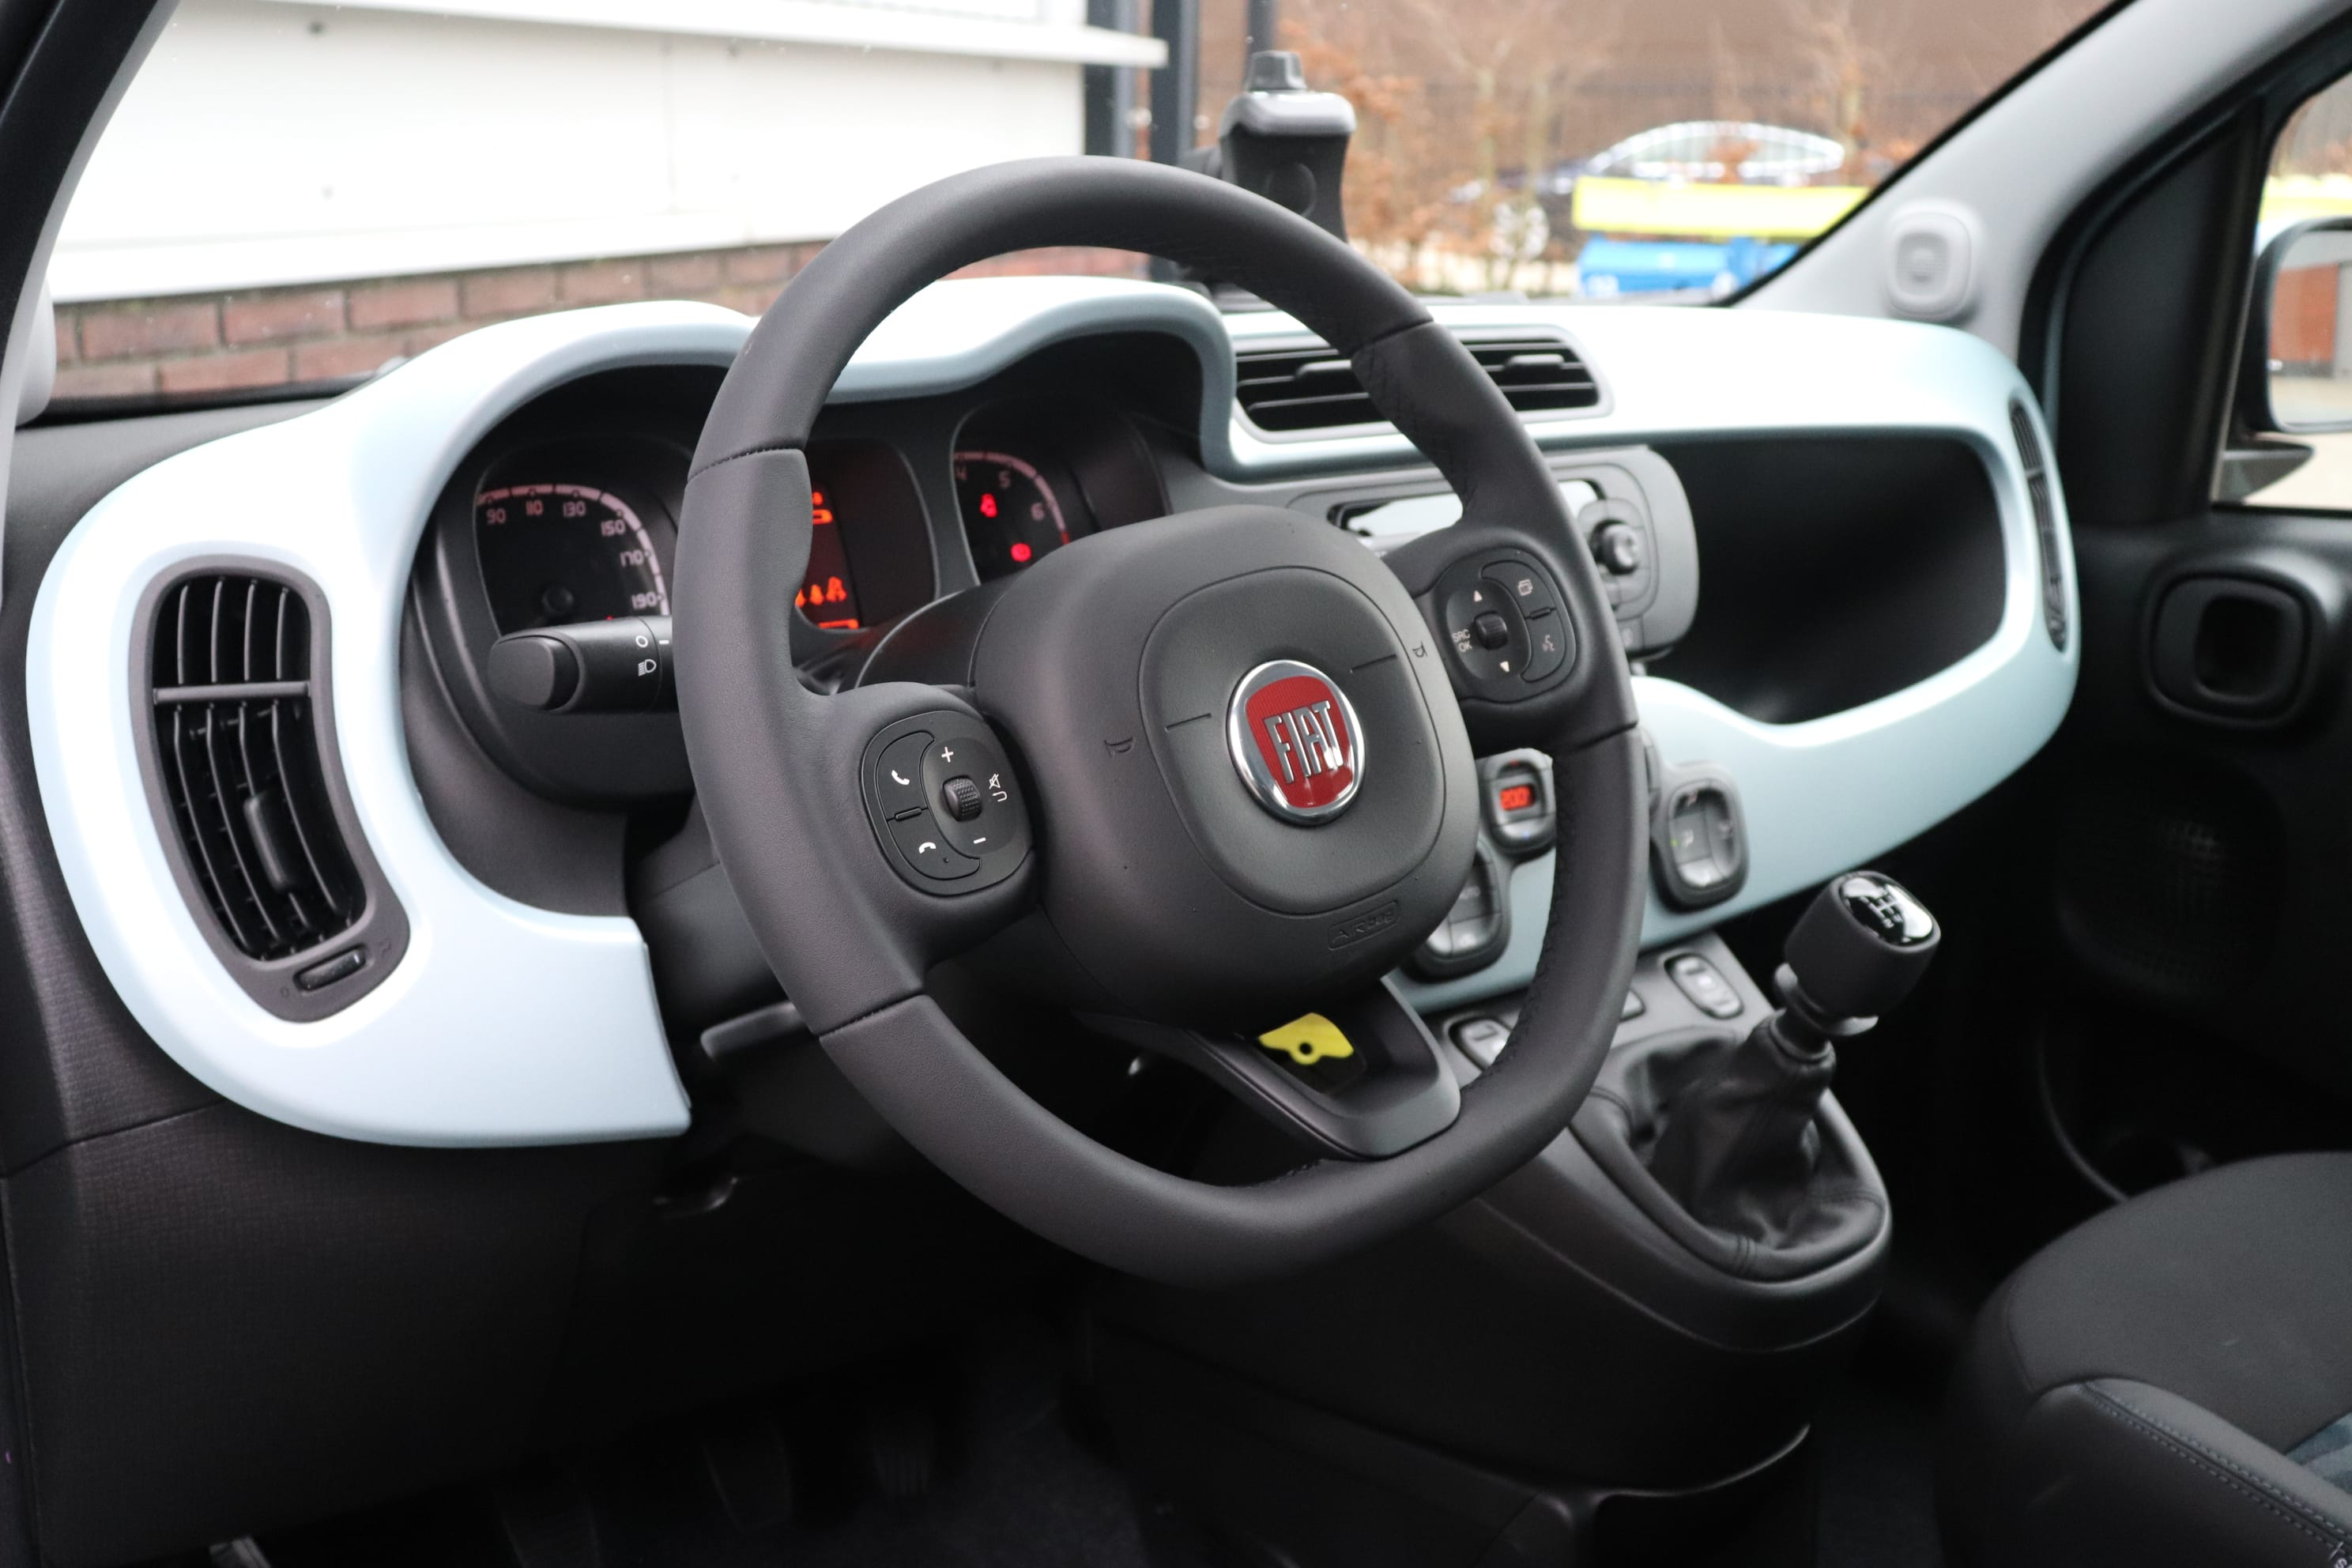 Fiat Panda Hybrid Launch Edition mintgroen - stuur + dashboard